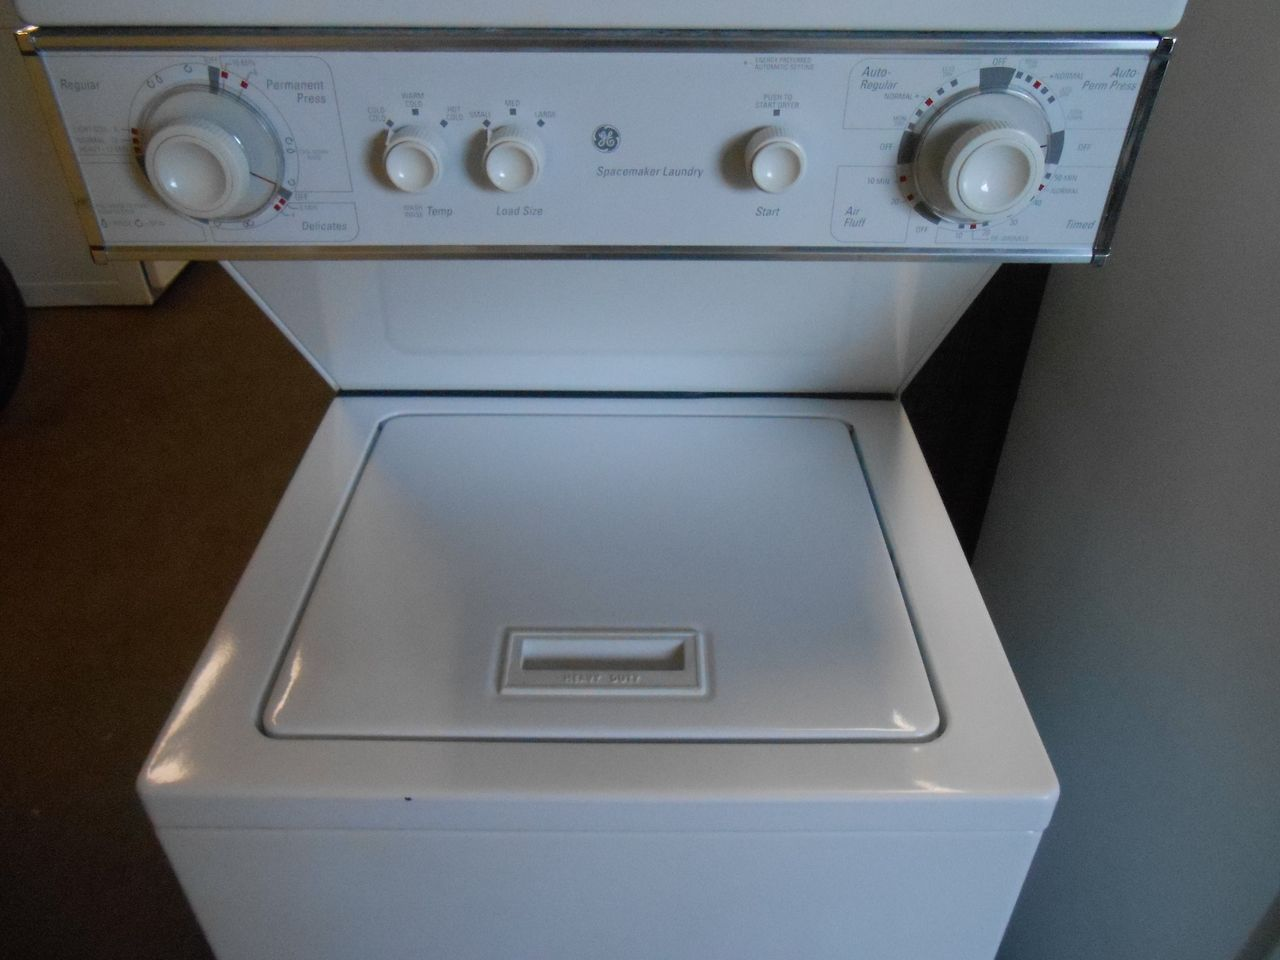 Ge 24 Inch Space Maker Laundry Center Built By Whirlpool Washer 4 Cycle 3 Temperature 3 Water Levels Dryer 4 Cycle Whirlpool Washer Laundry Center Whirlpool